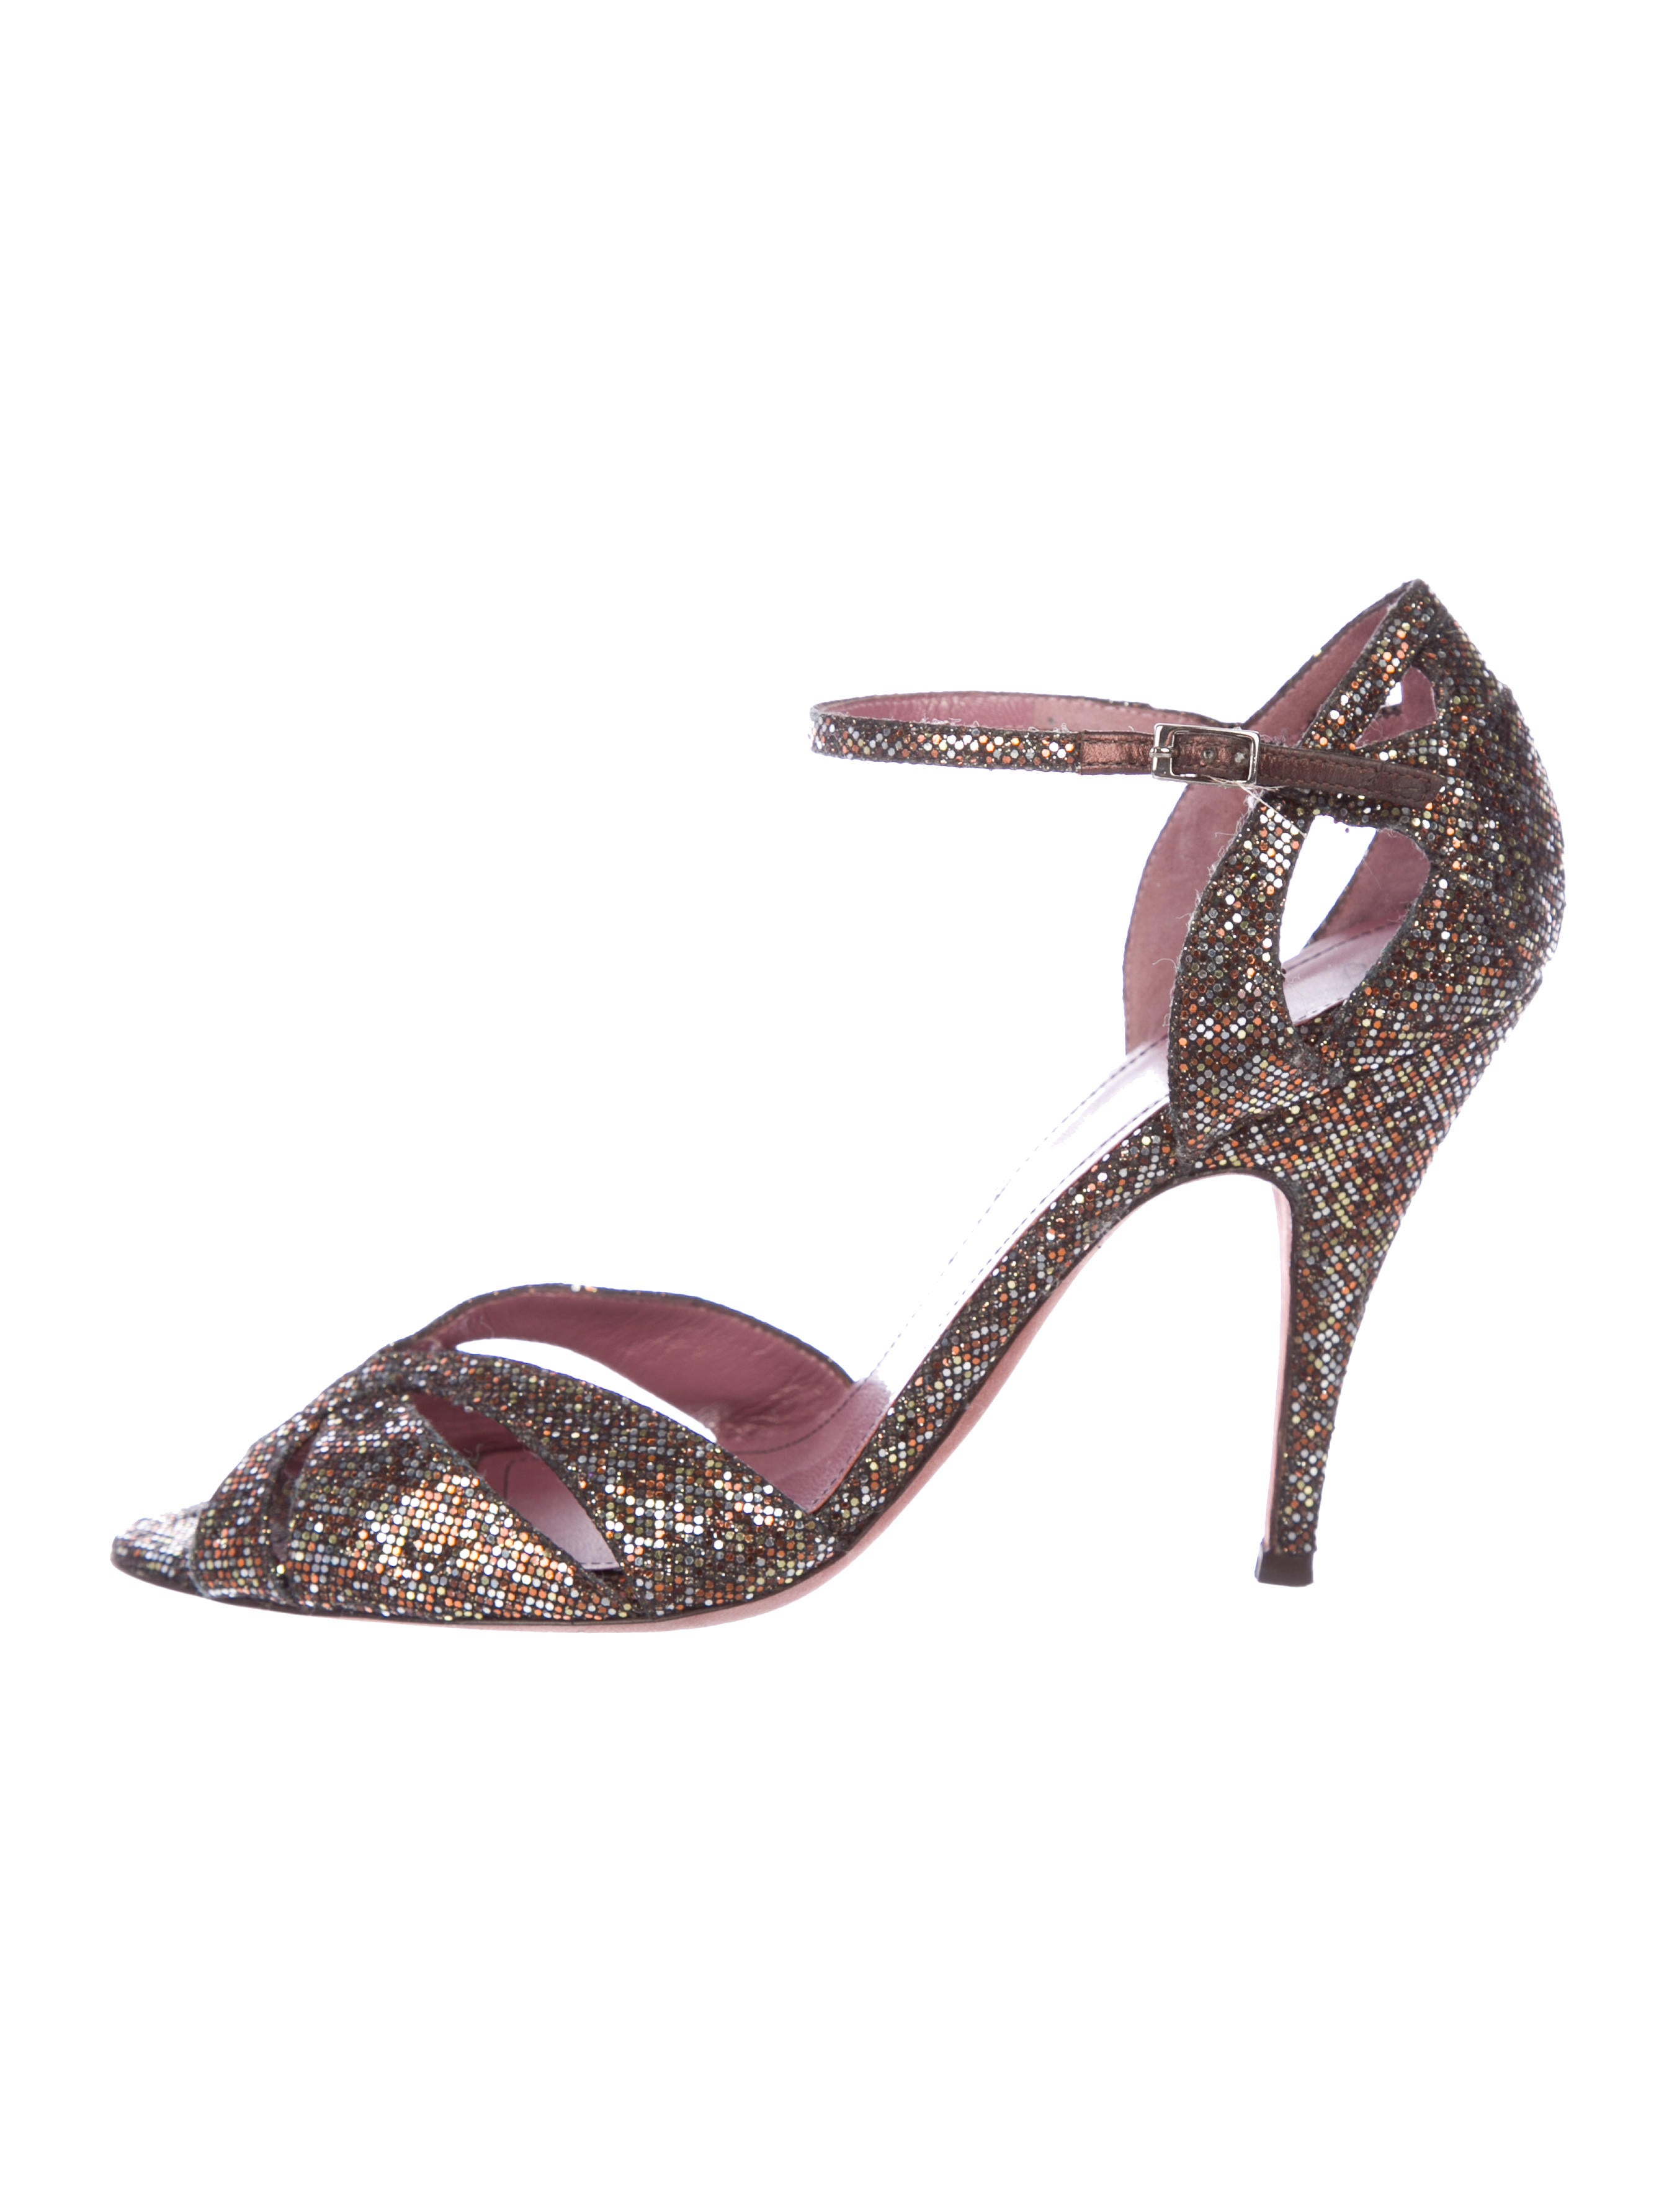 free shipping visit new Jean-Michel Cazabat Glitter Slingback Pumps tumblr for sale great deals cheap price s7tjz